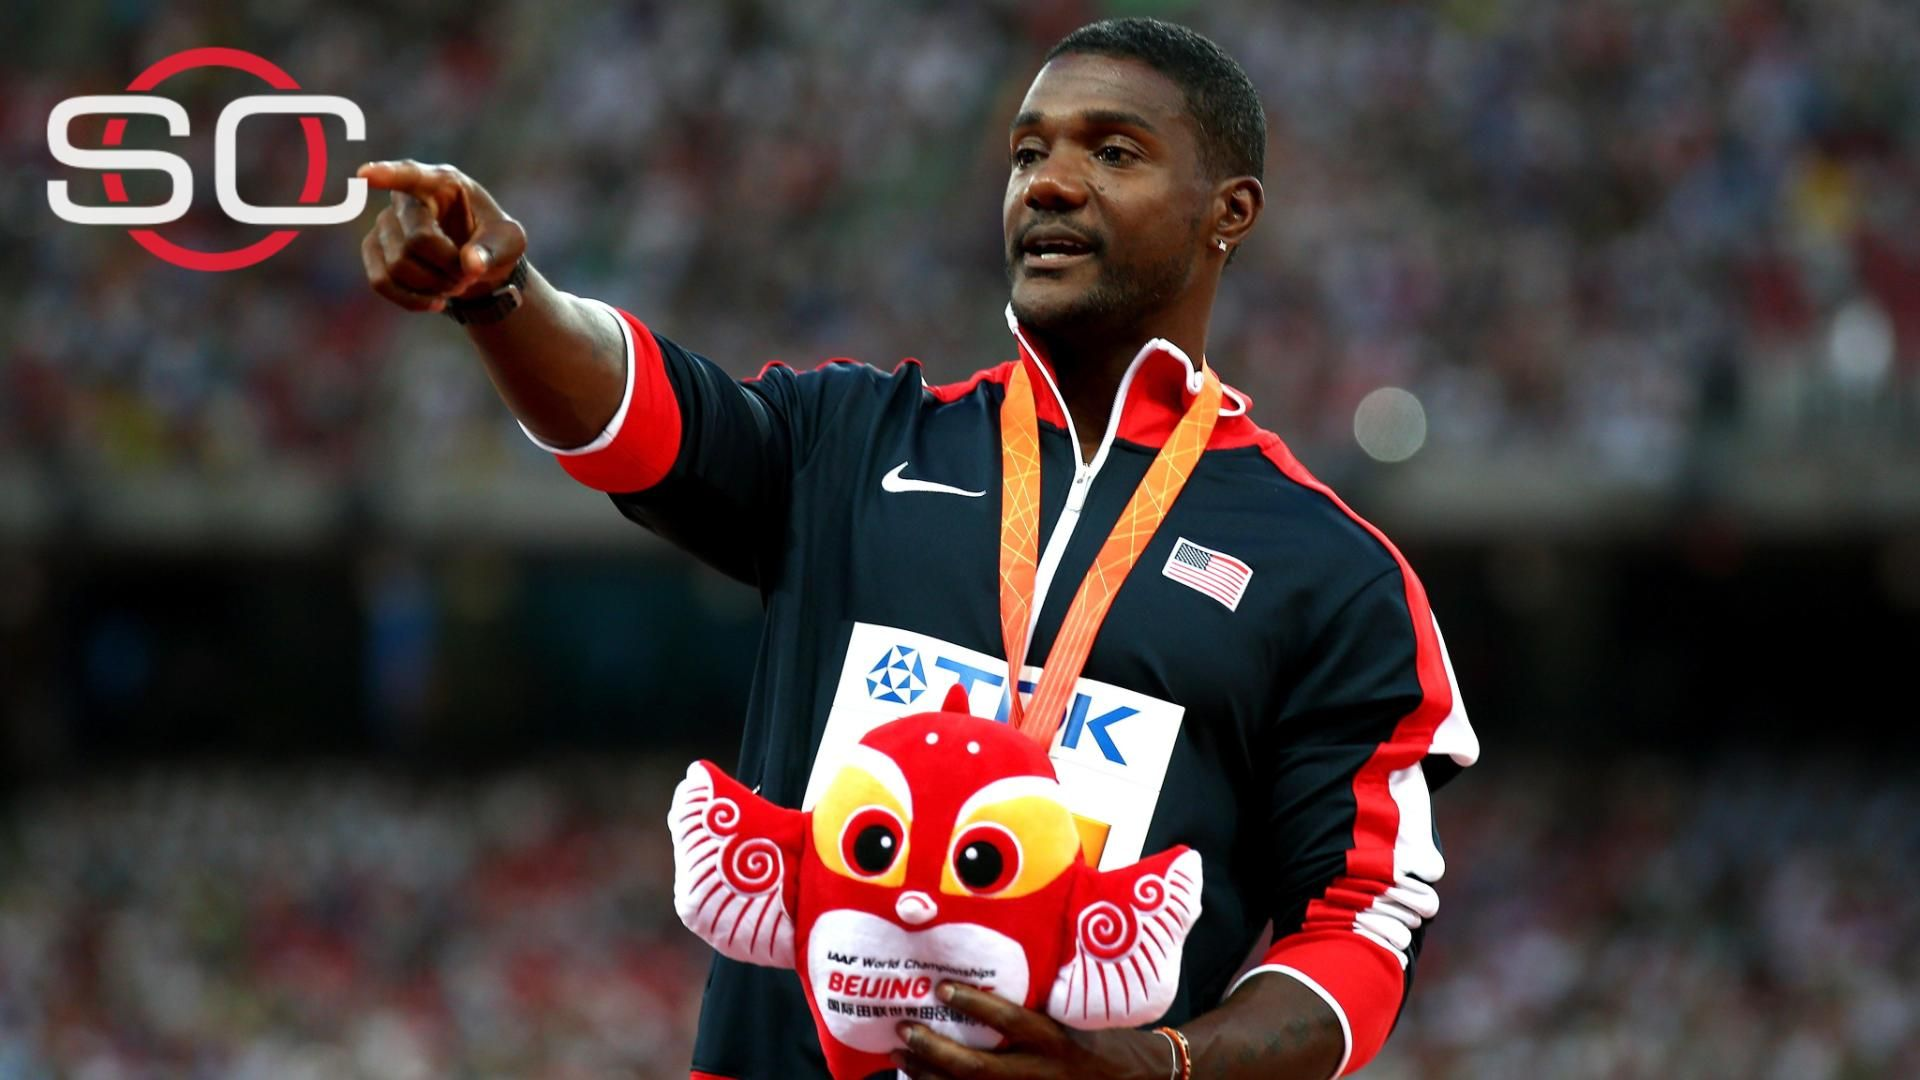 Gatlin defends mom, calls out heckler from podium